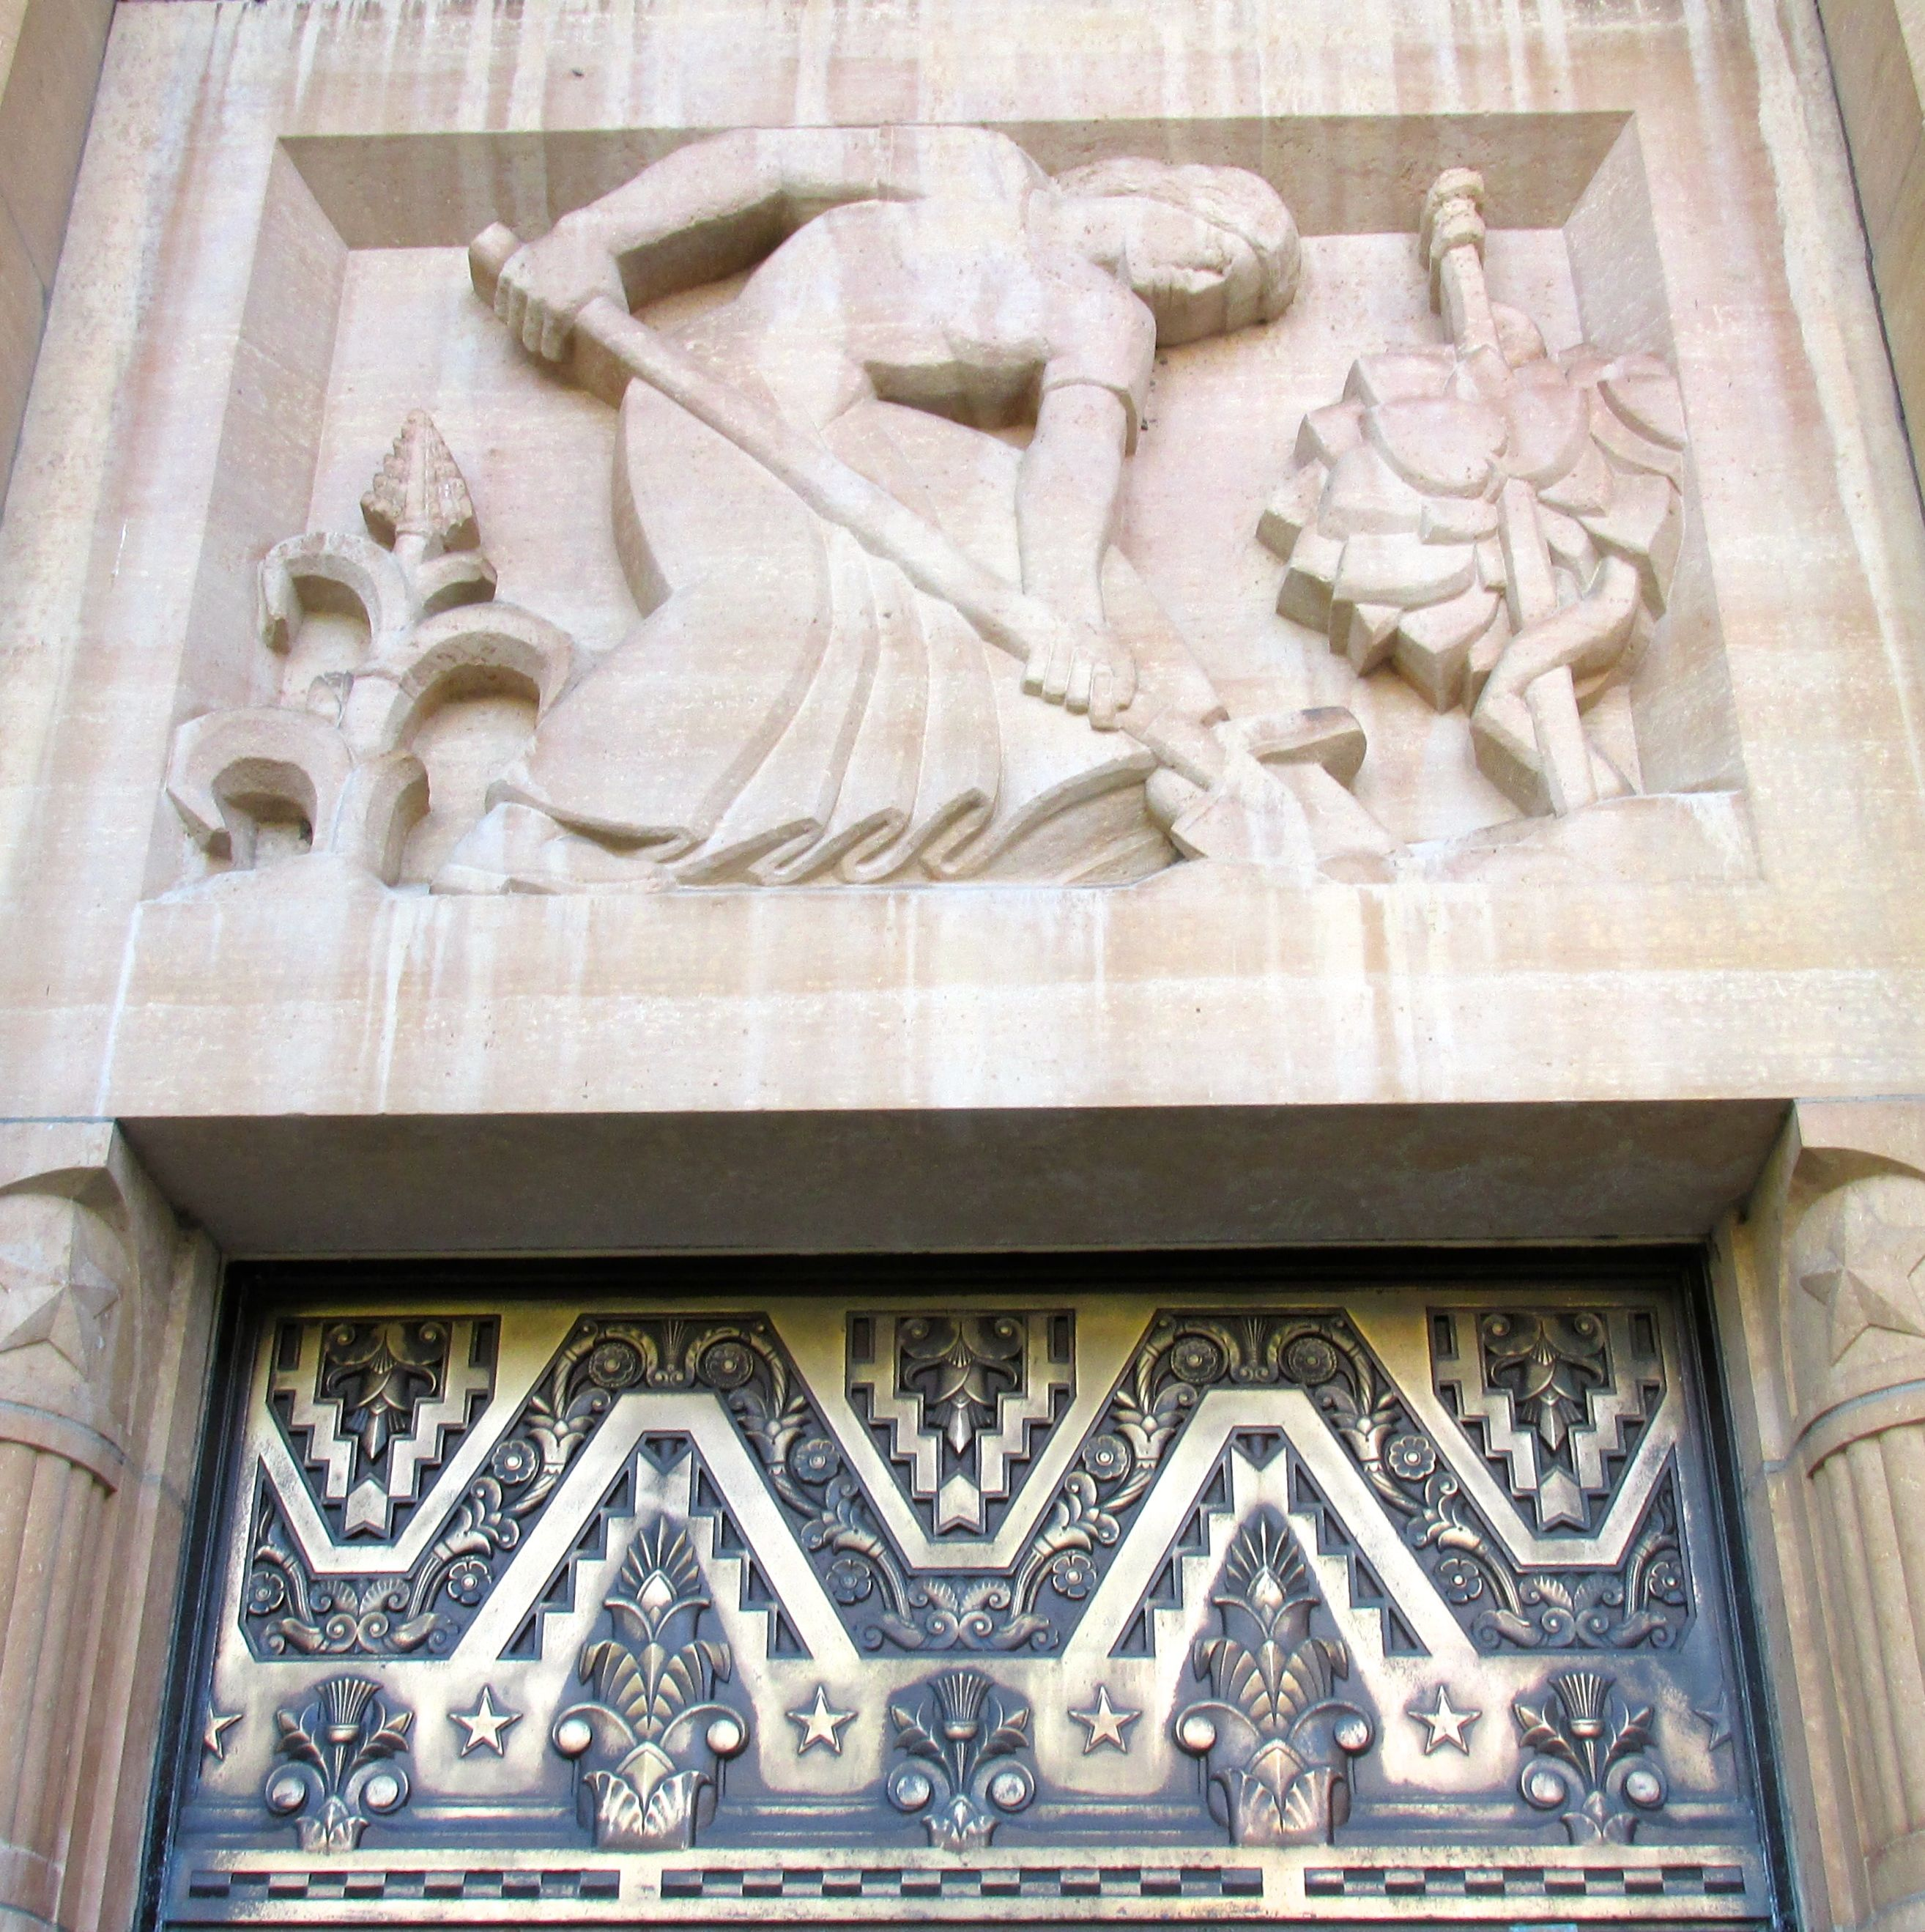 Decoration over an entrance